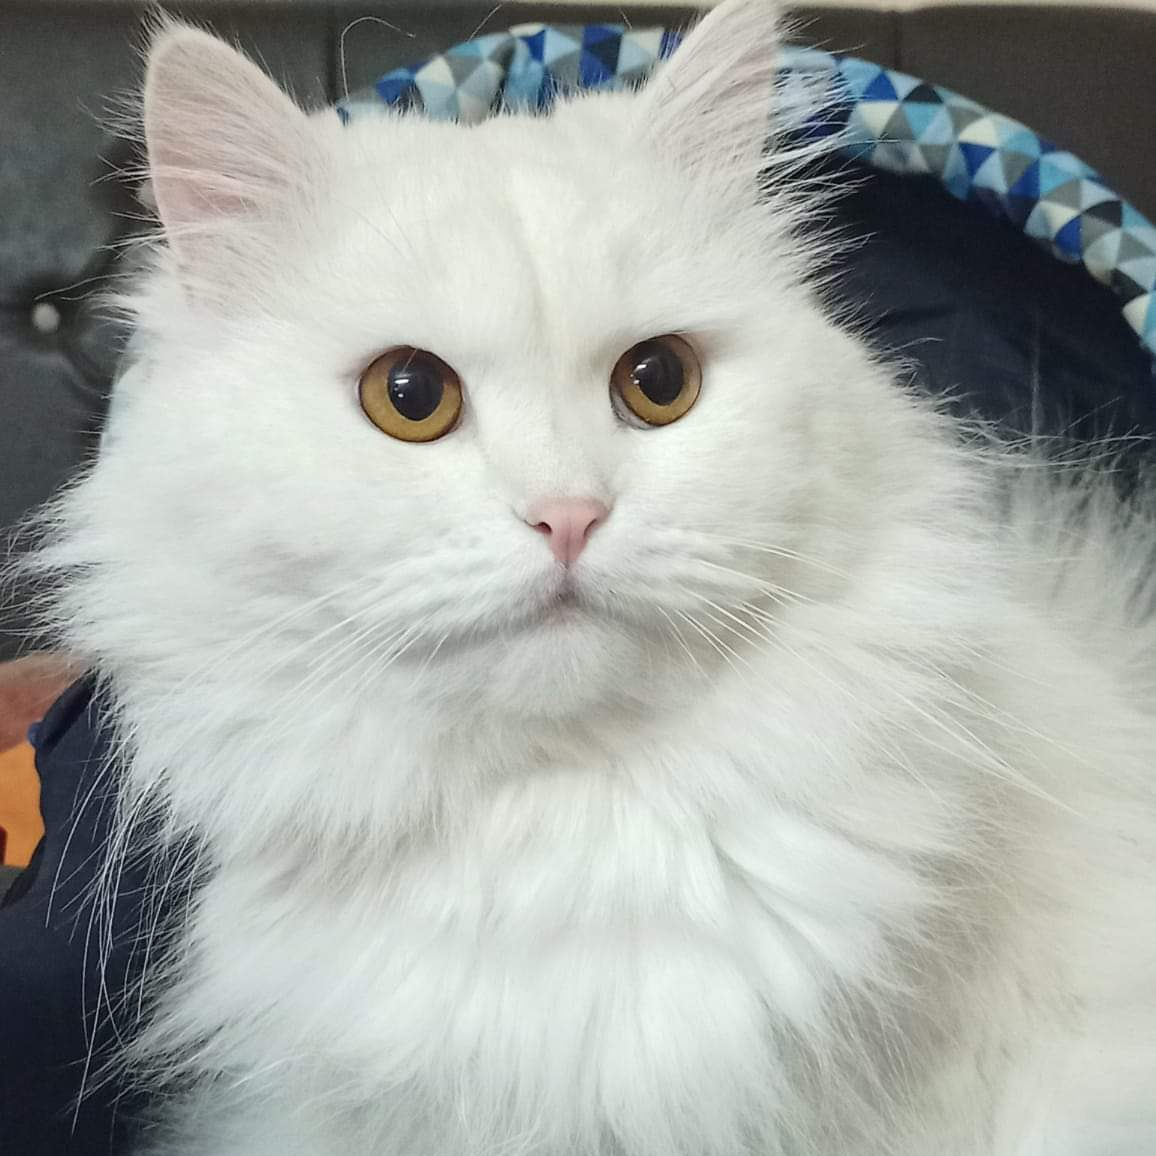 Pandemic Pet Adoption - White Cat